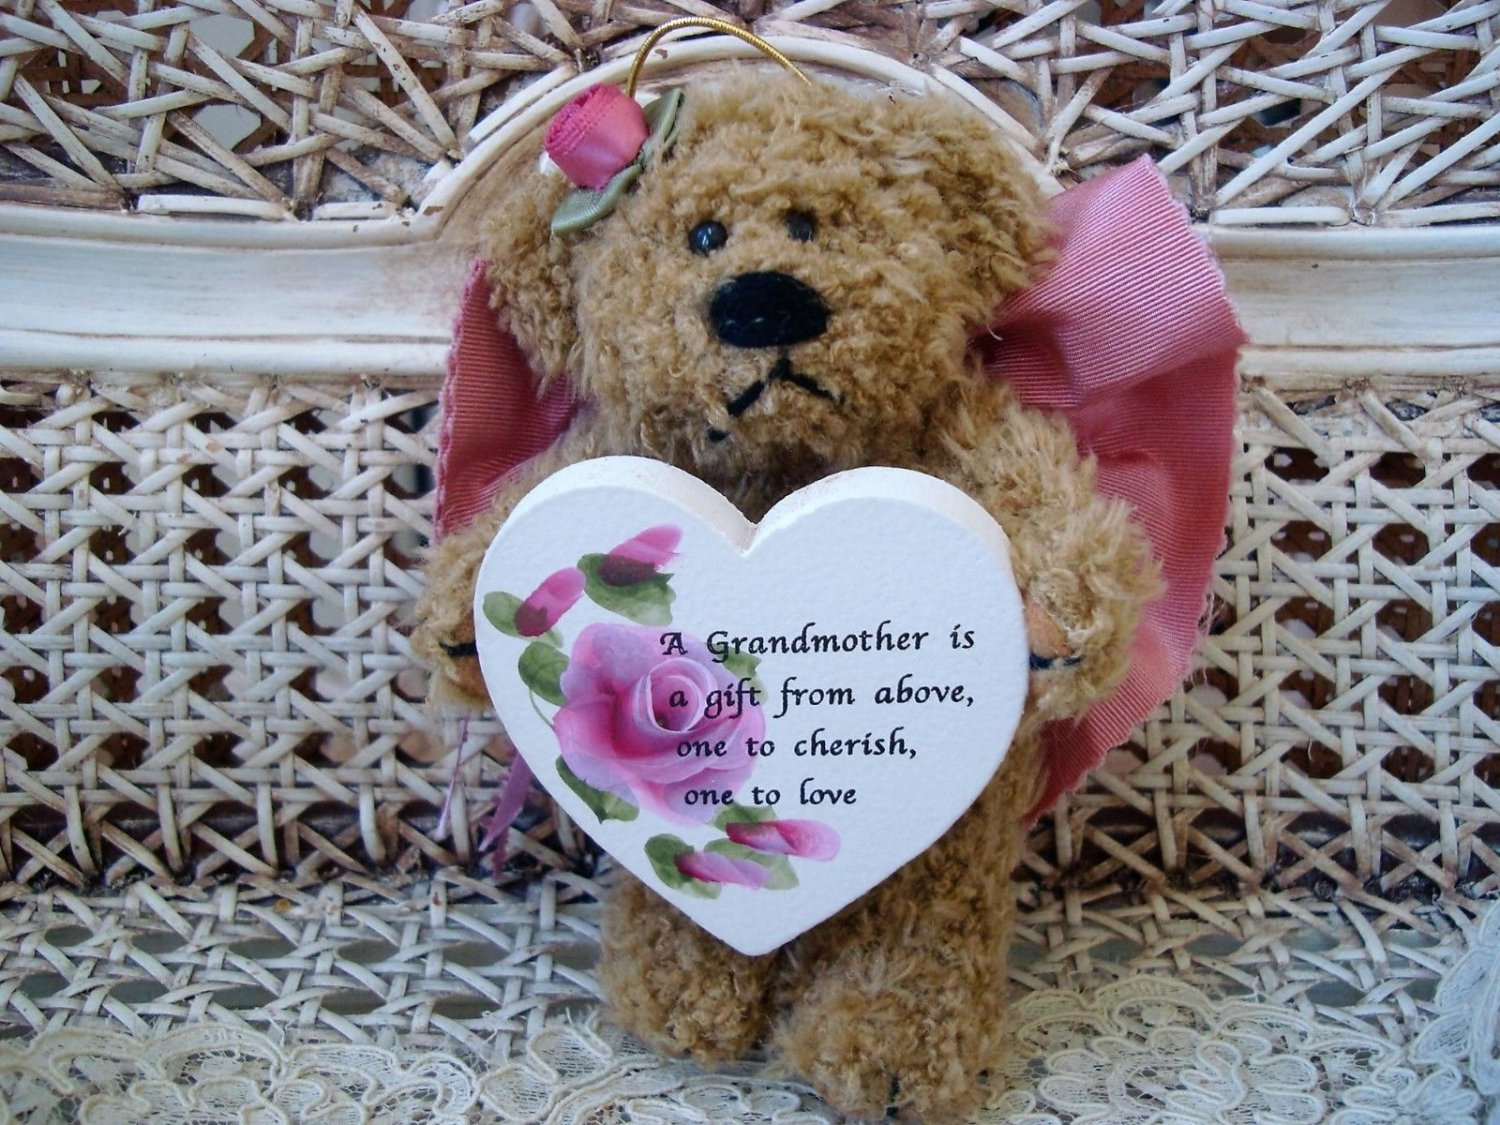 A GRANDMOTHER IS A GIFT FROM ABOVE MAUVE BEAR ORNAMENT WITH WOODEN HEART SO CUTE